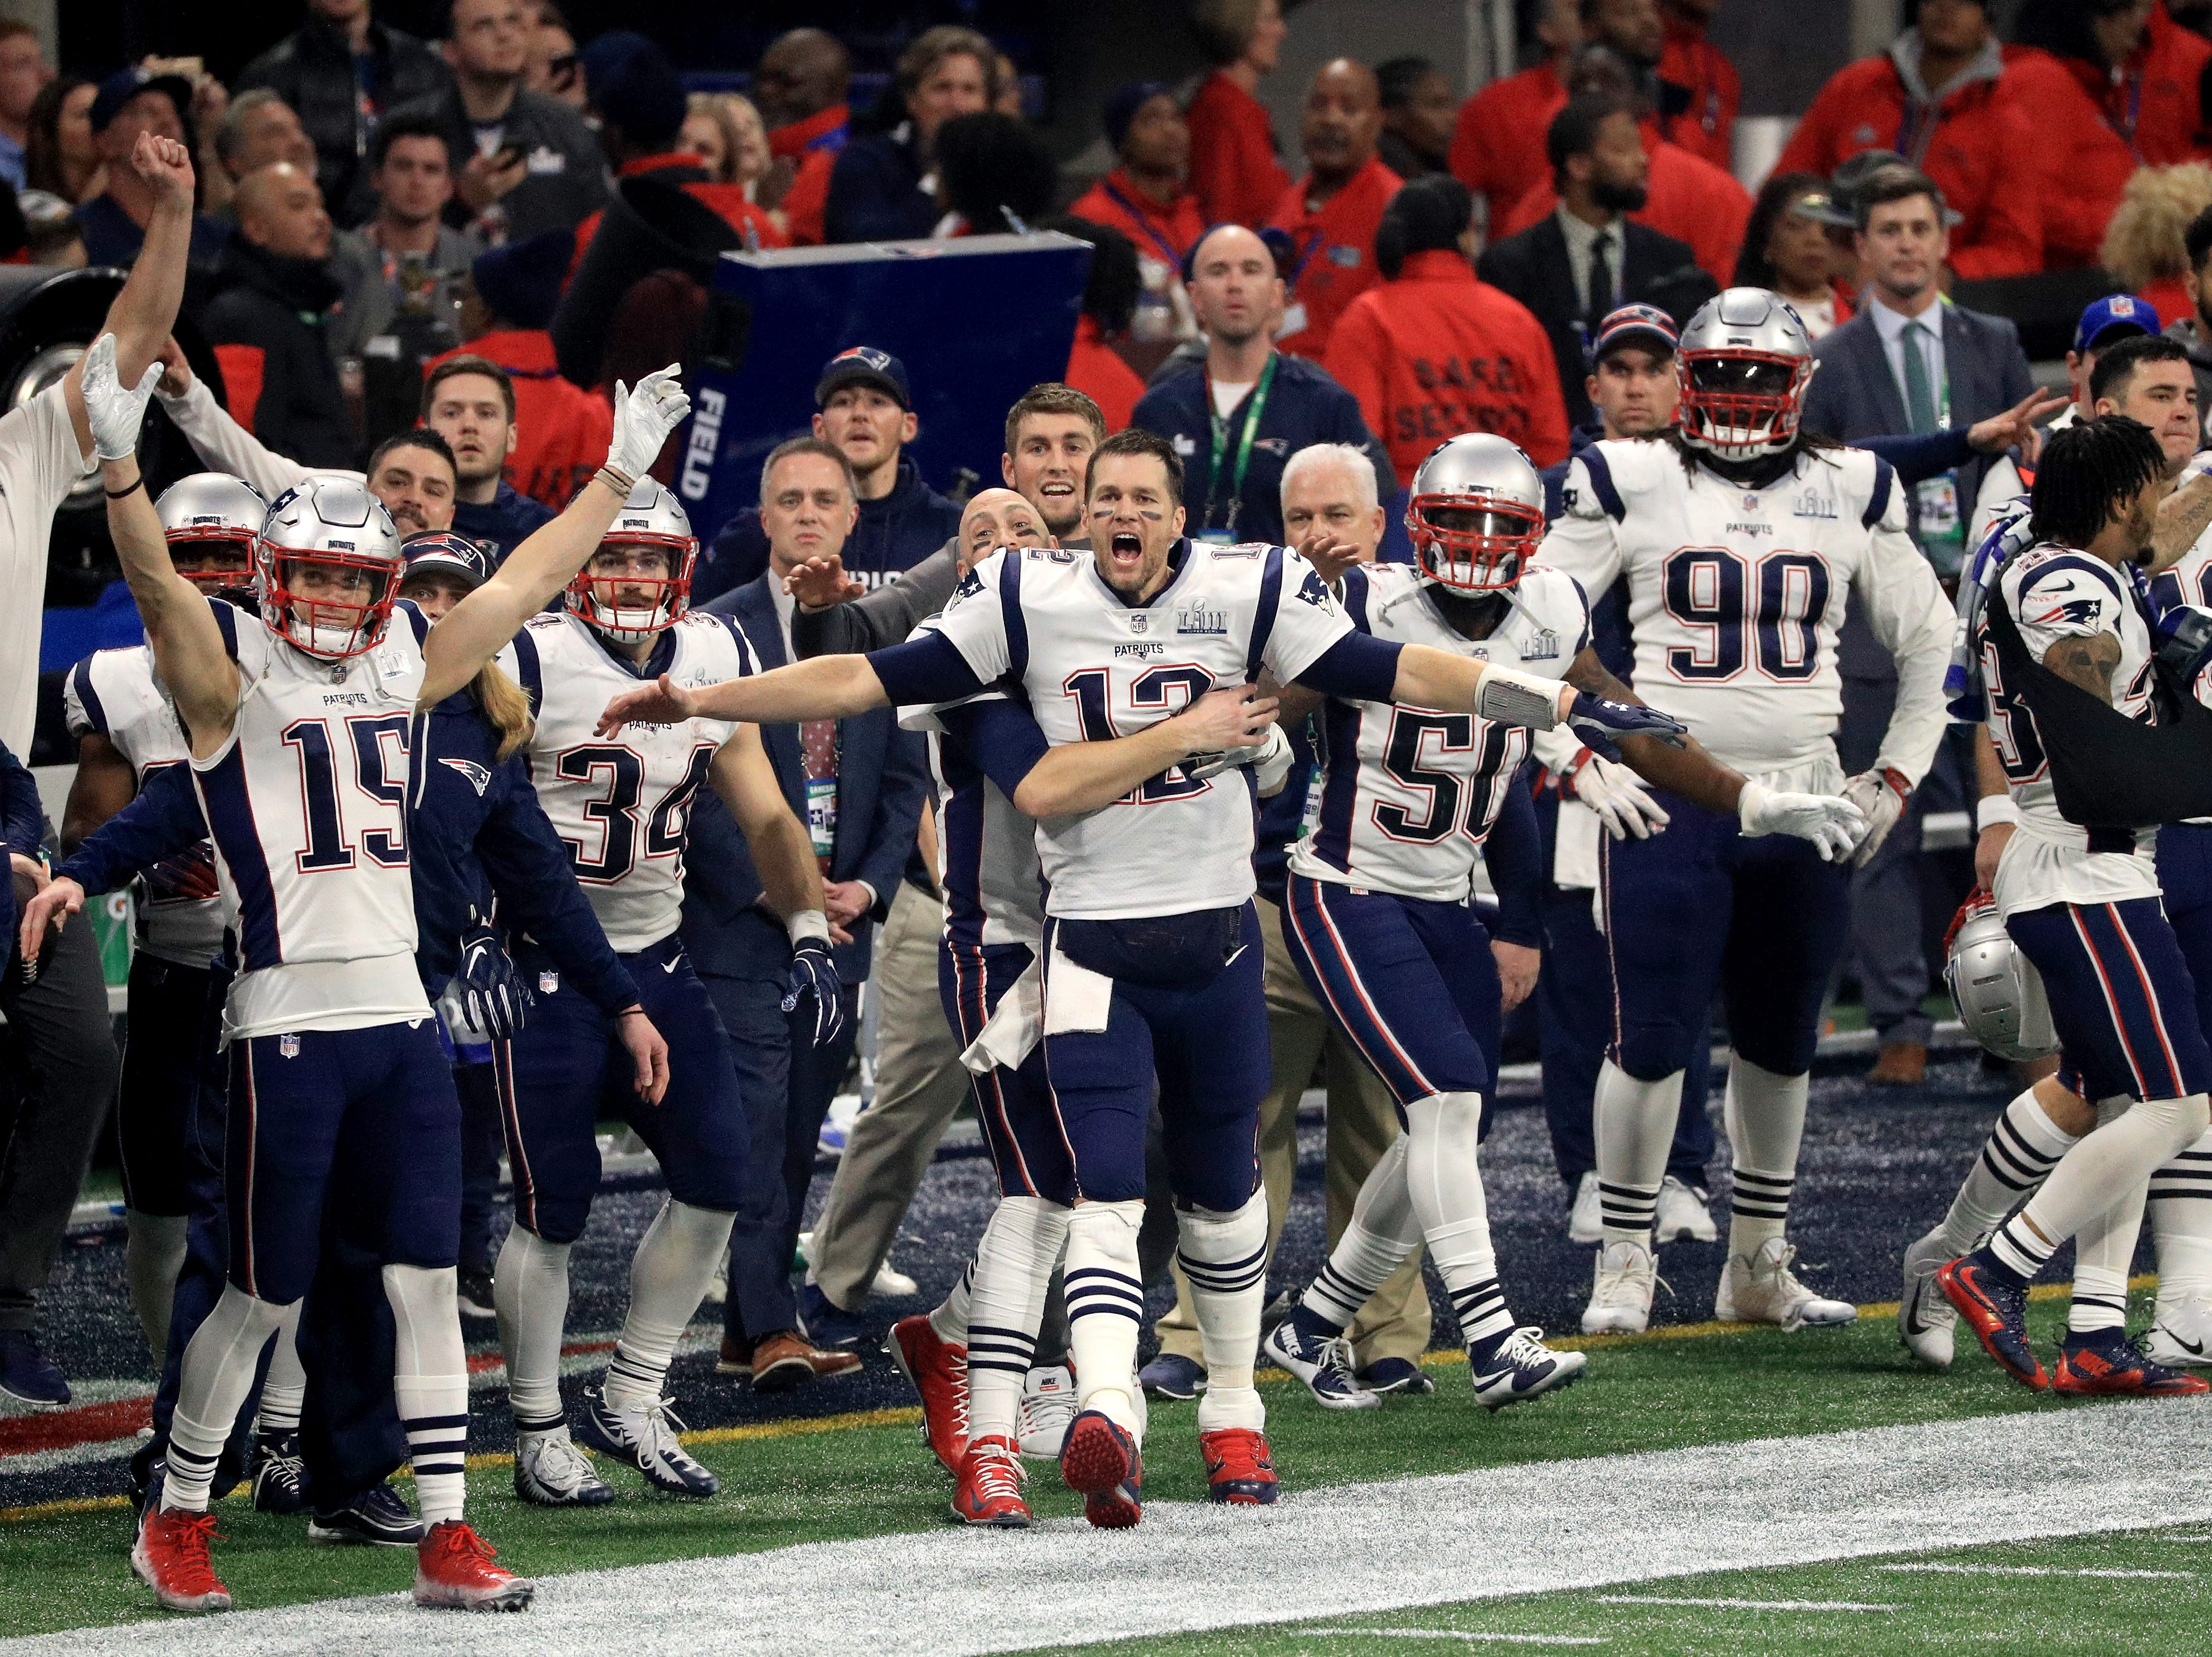 Tom Brady #12 of the New England Patriots and teammates celebrate after winning the Super Bowl LIII at against the Los Angeles Rams Mercedes-Benz Stadium on February 3, 2019 in Atlanta, Georgia. The New England Patriots defeat the Los Angeles Rams 13-3.